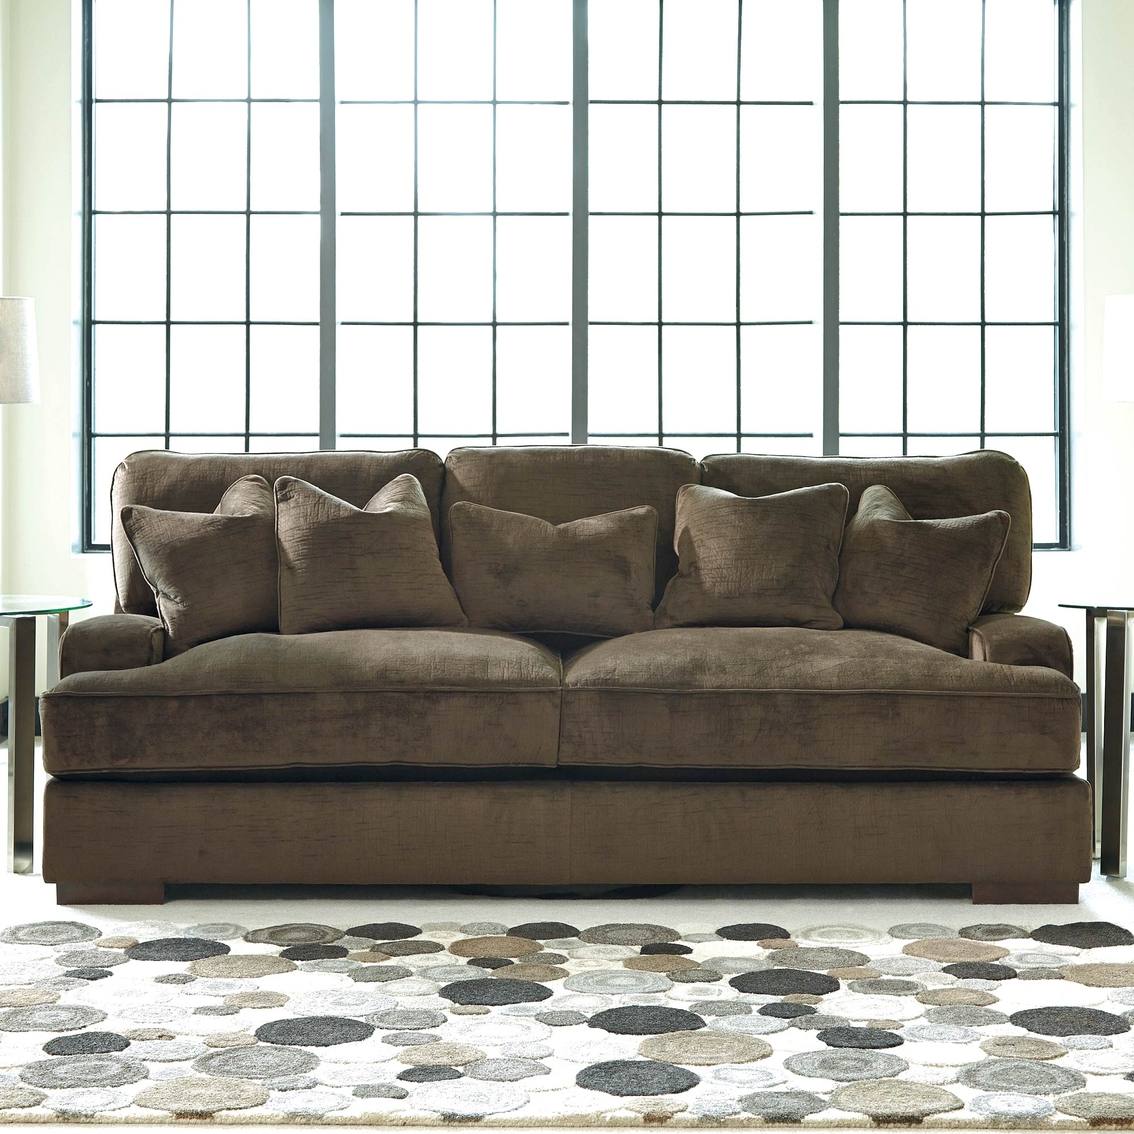 Bench craft sofa danely dusk polyester sofa chaise for Berkline reclining chaise